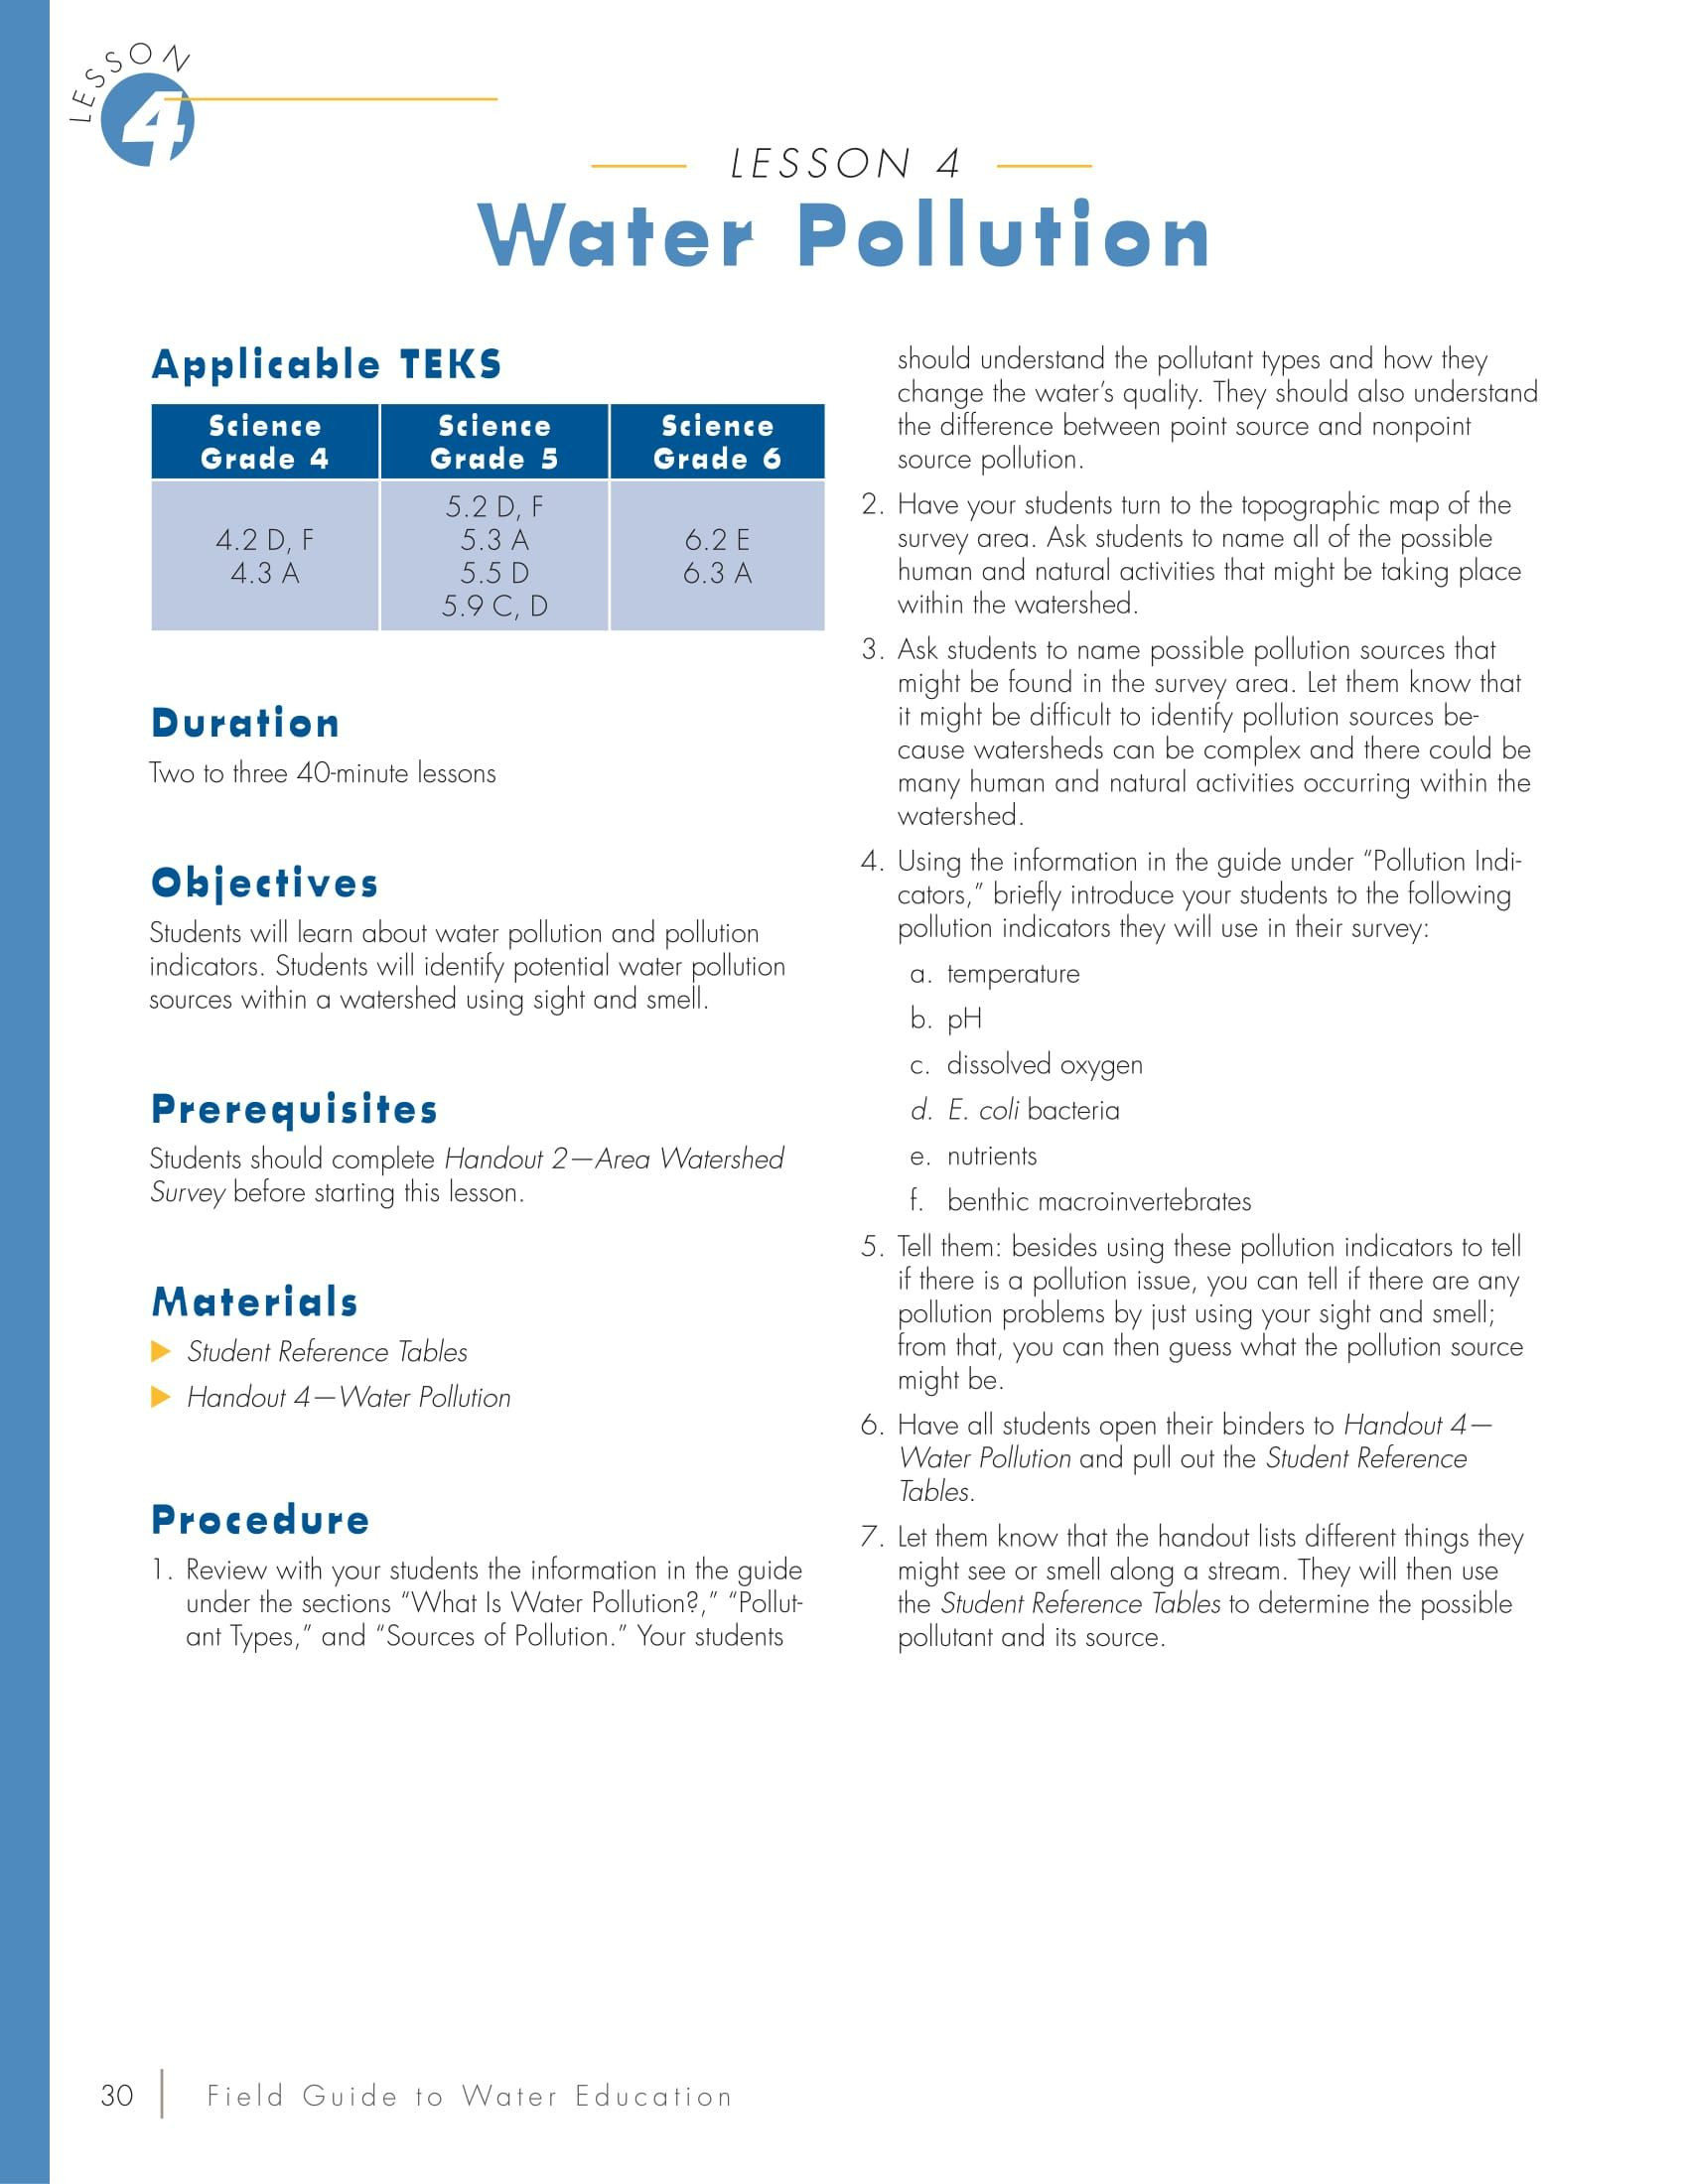 Water Pollution Worksheets High School Water Pollution Lesson Plan